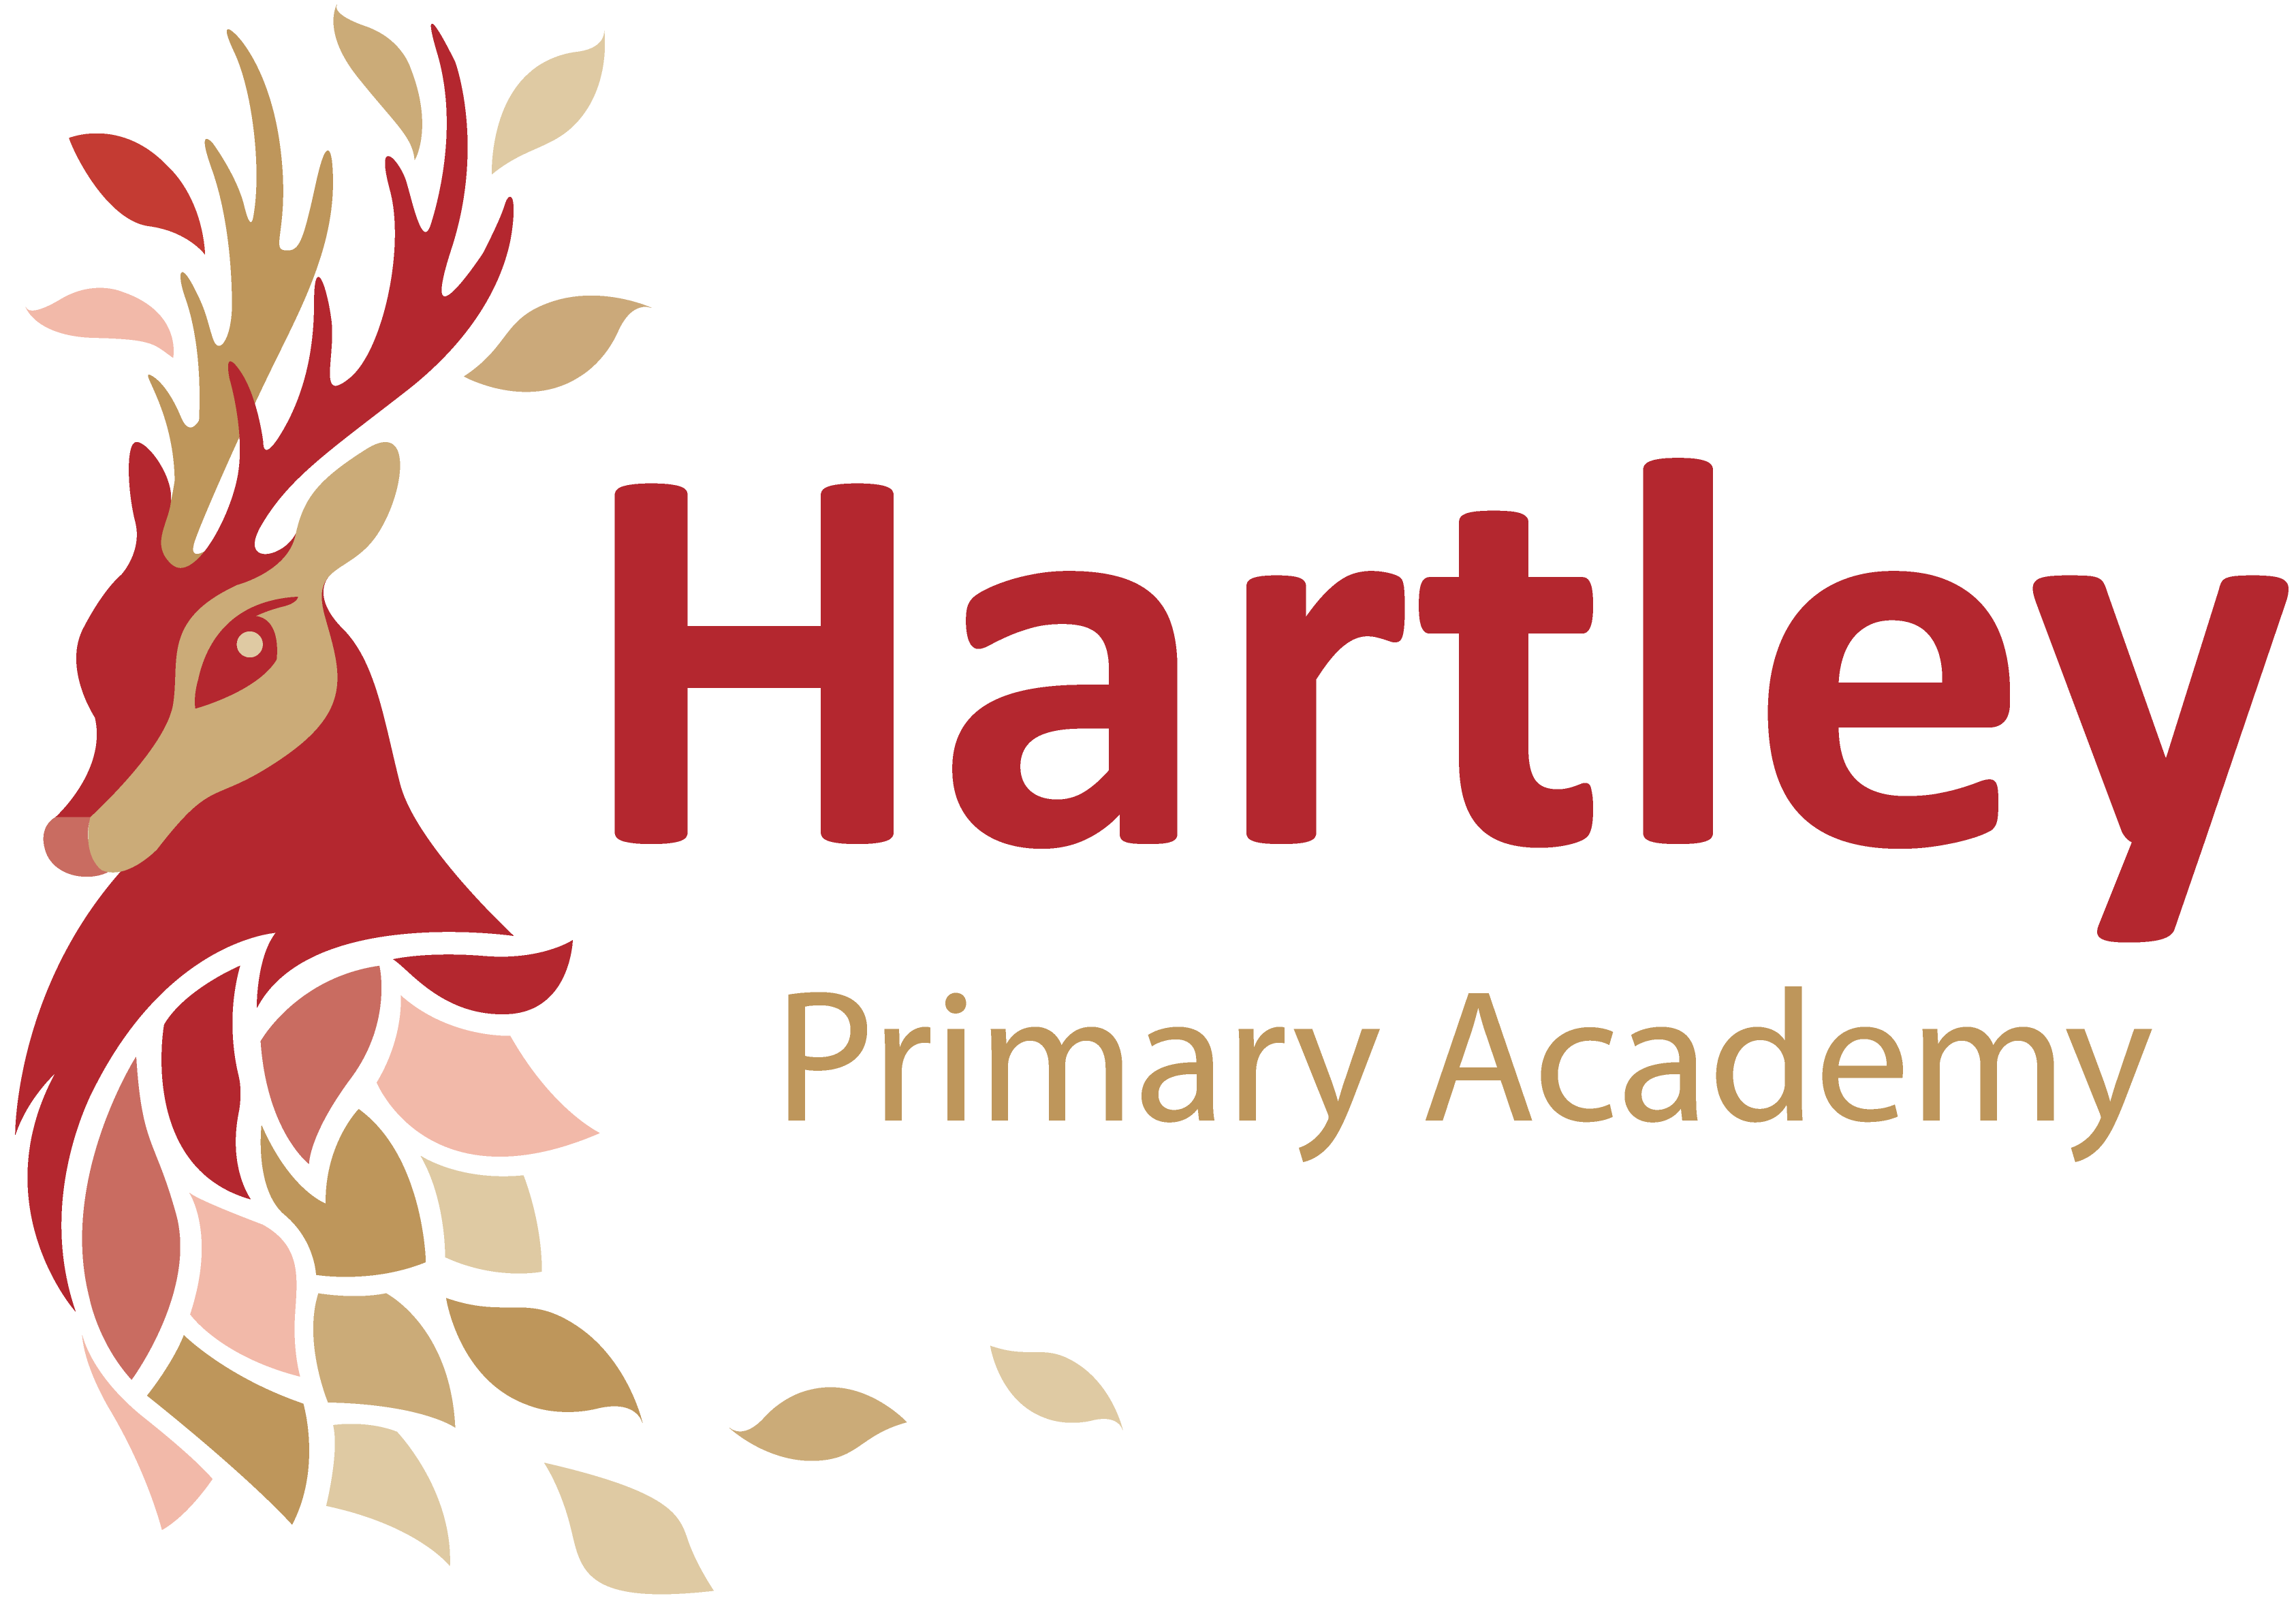 Hartley Primary Academy